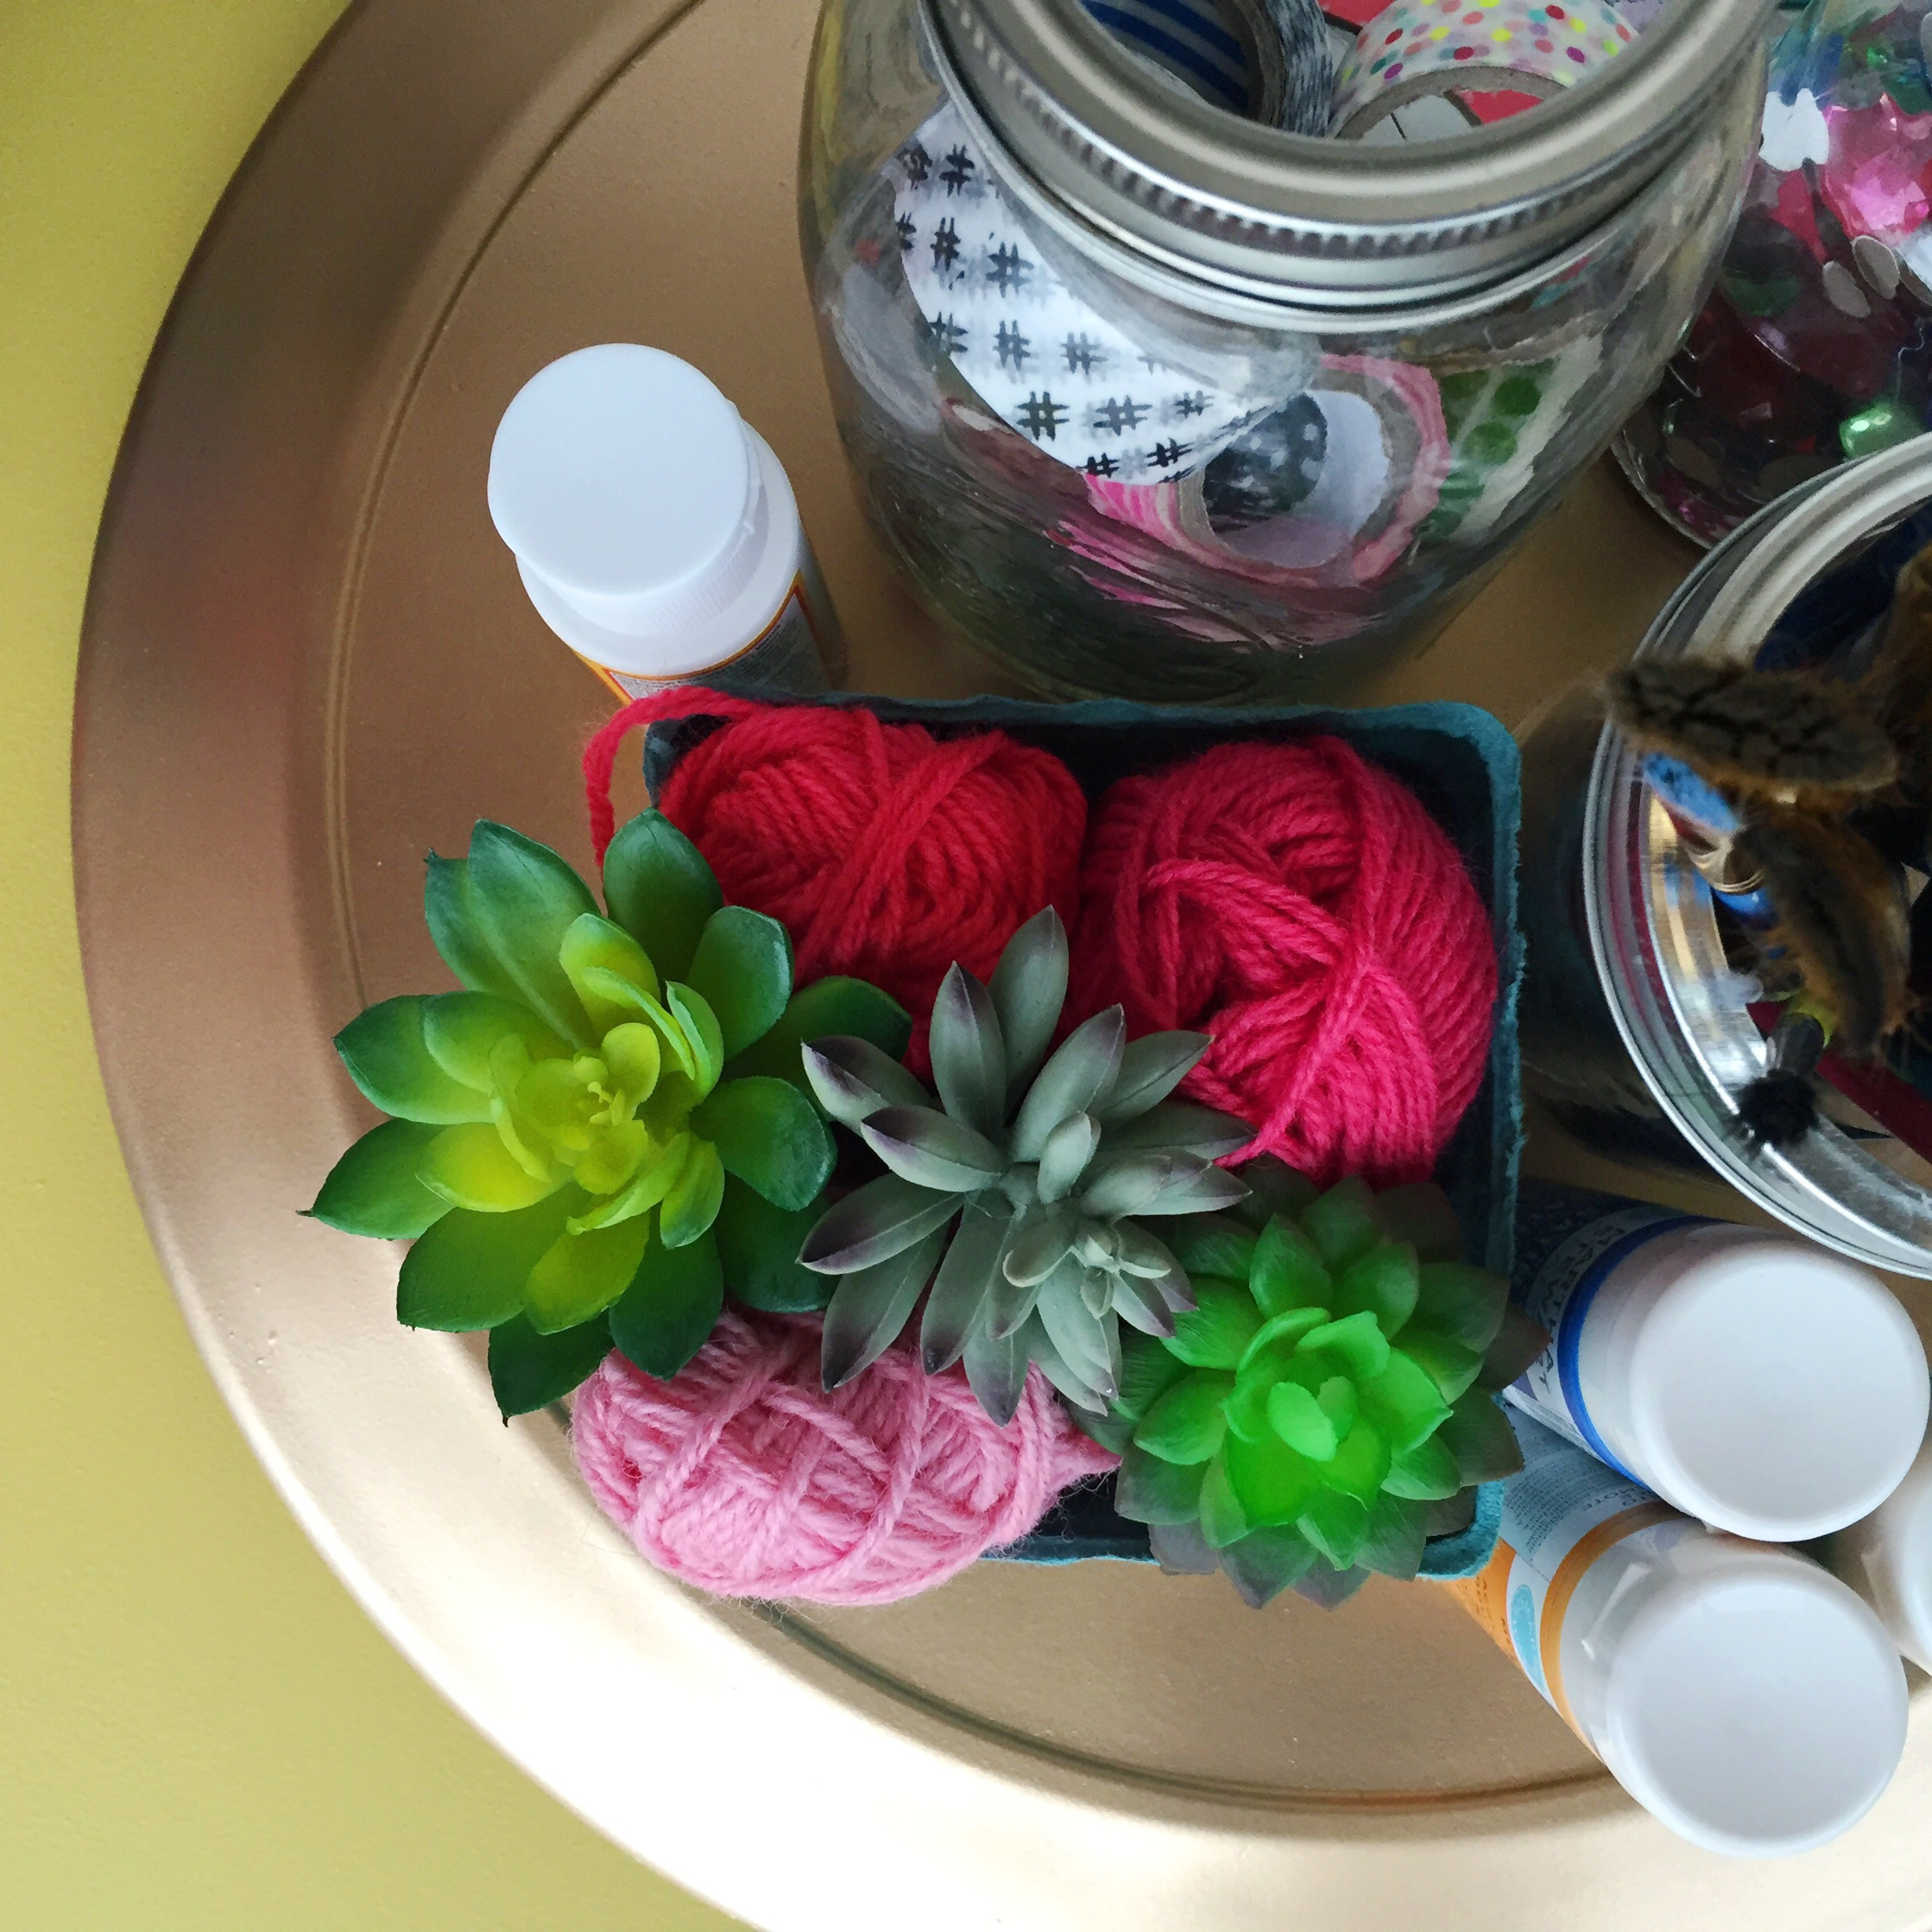 Thrifted lazy susan revamped for keeping frequently used craft supplies handy